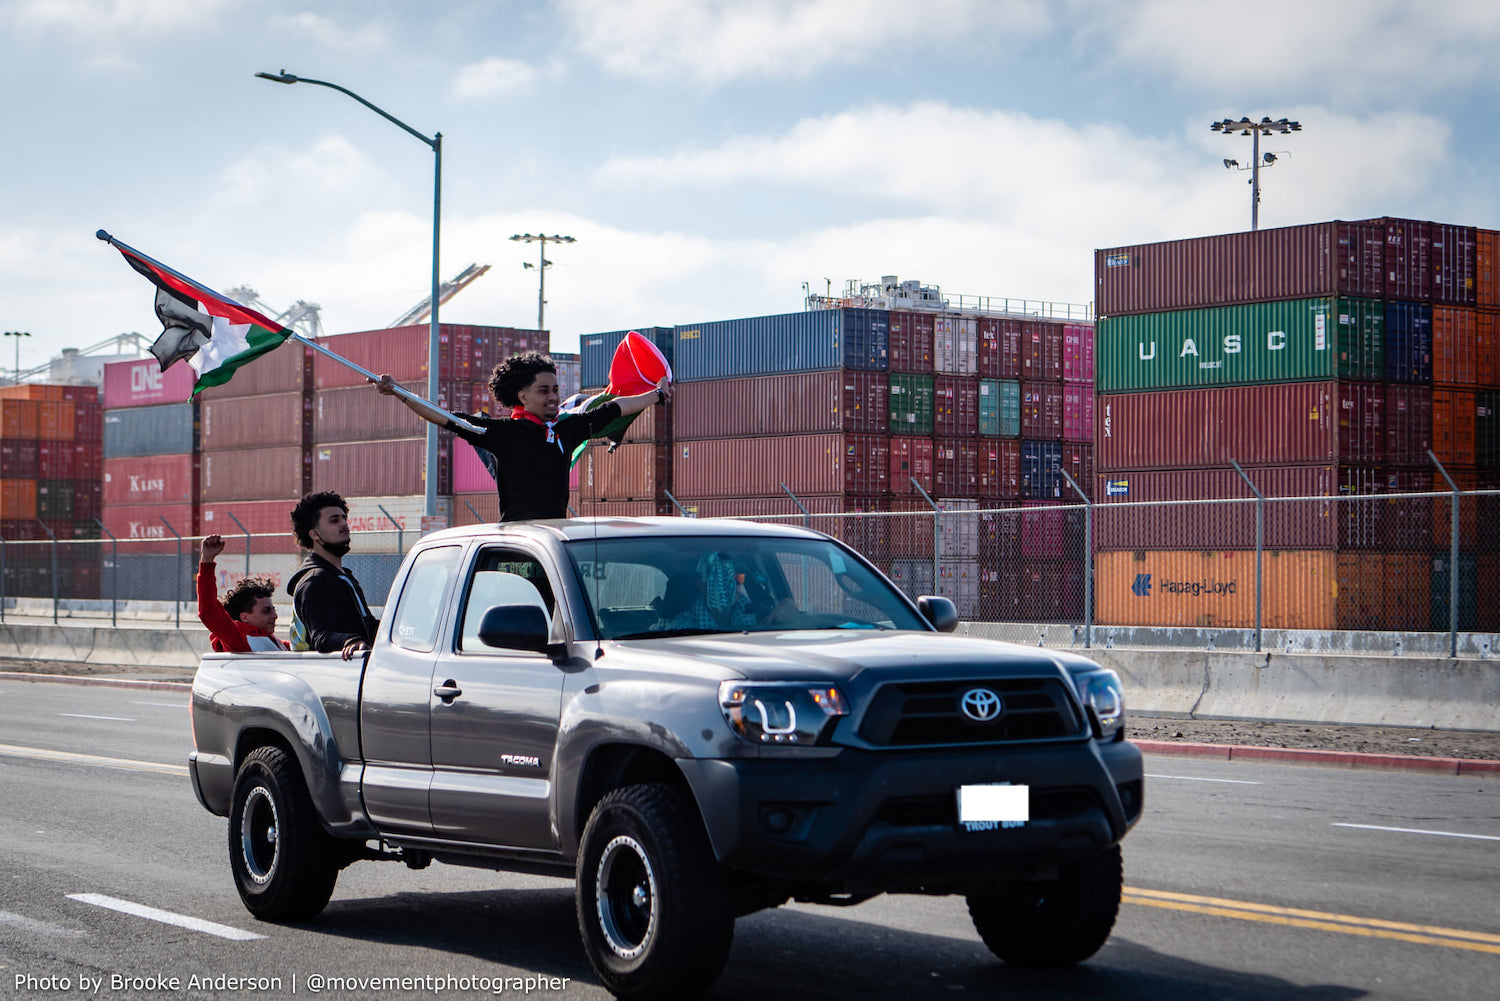 A Palestine solidarity activist hoists the Palestinian flag as demonstrators move to block an Israeli-owned ship at the Port of Oakland, in protest of Israel's aggressions, June 4, 2021. (Brooke Anderson)